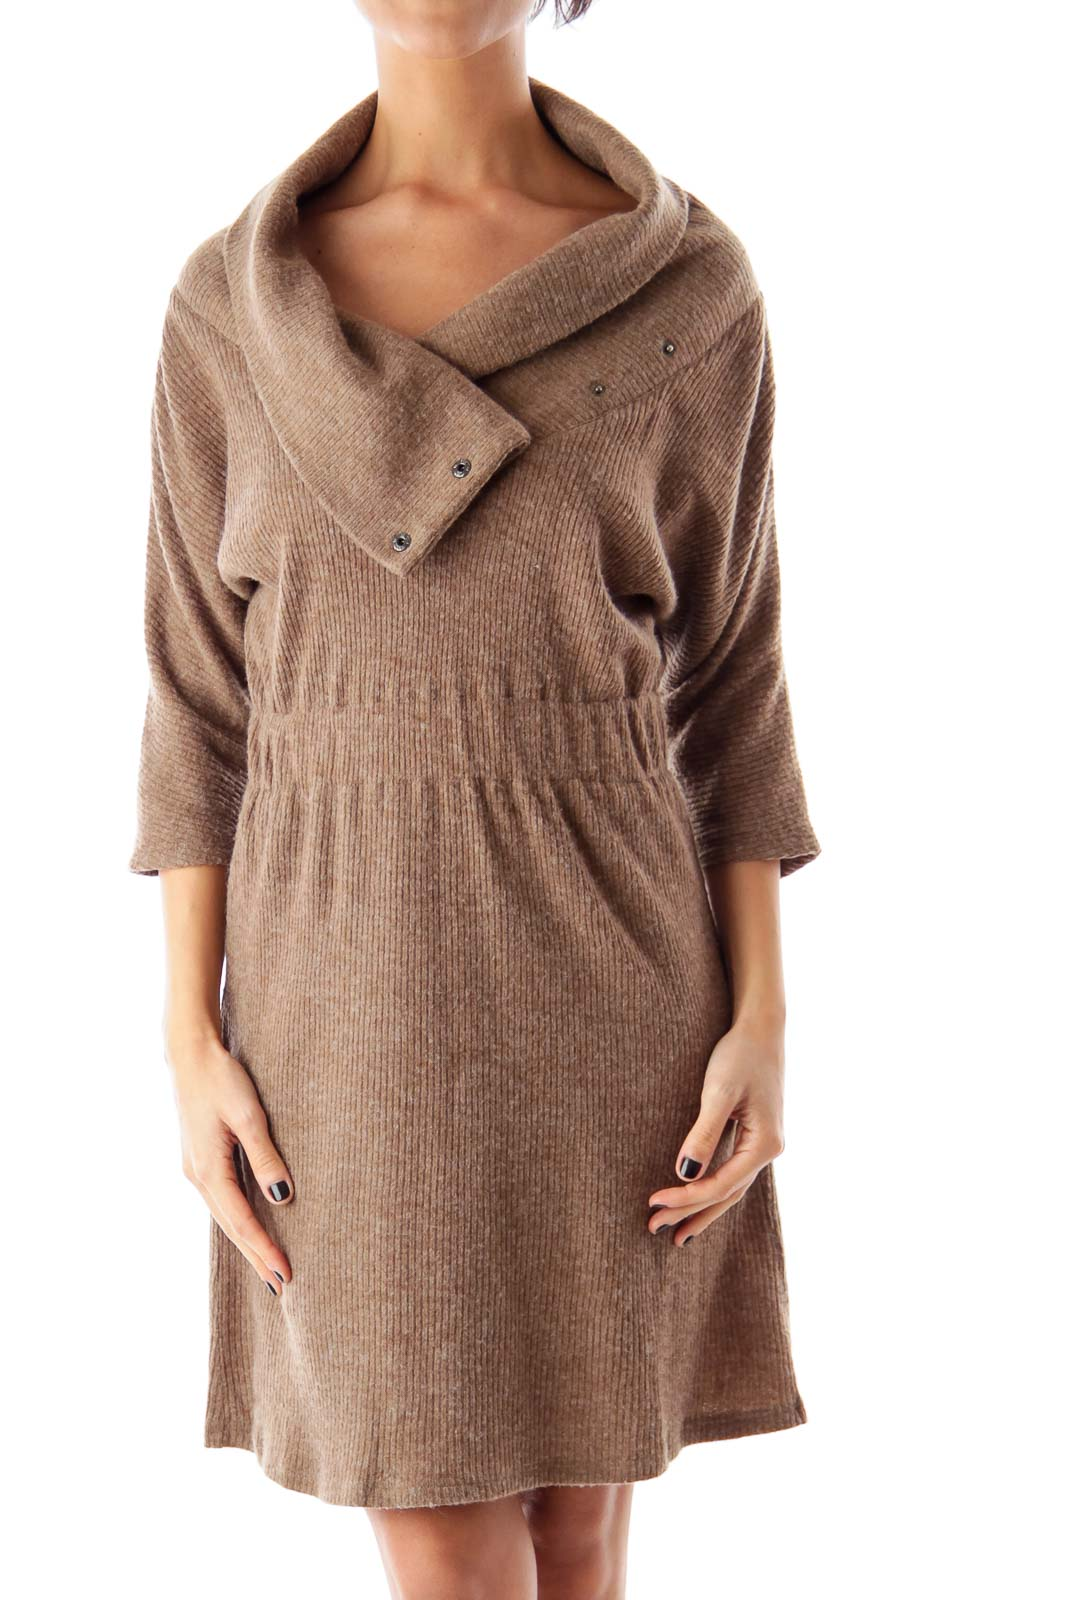 Brown Knit Sweater Dress Front